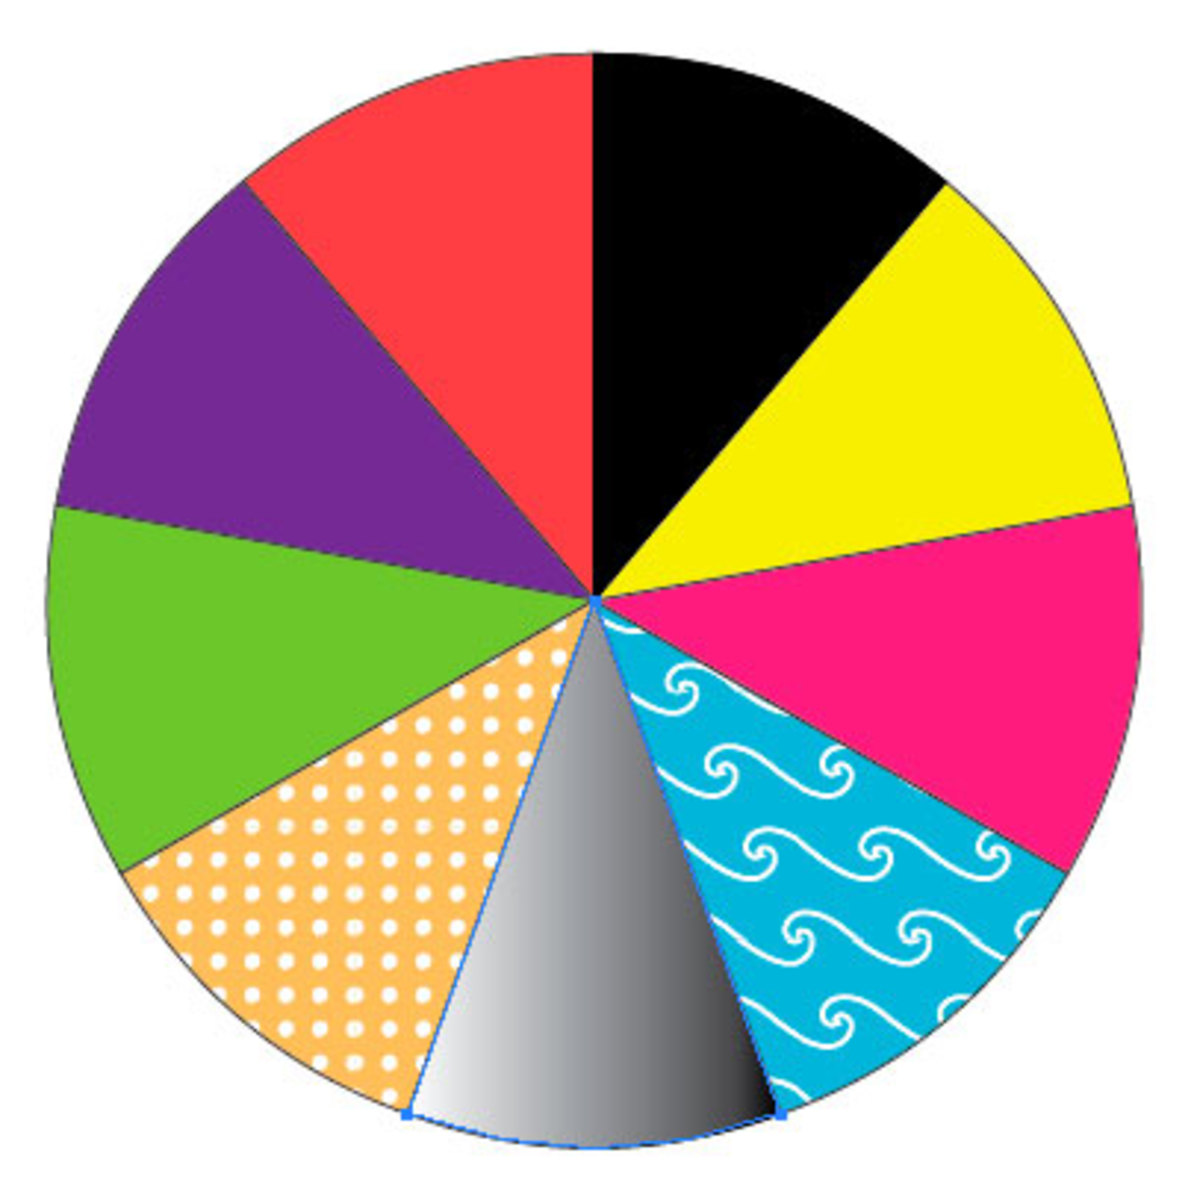 Coloured Pie Chart